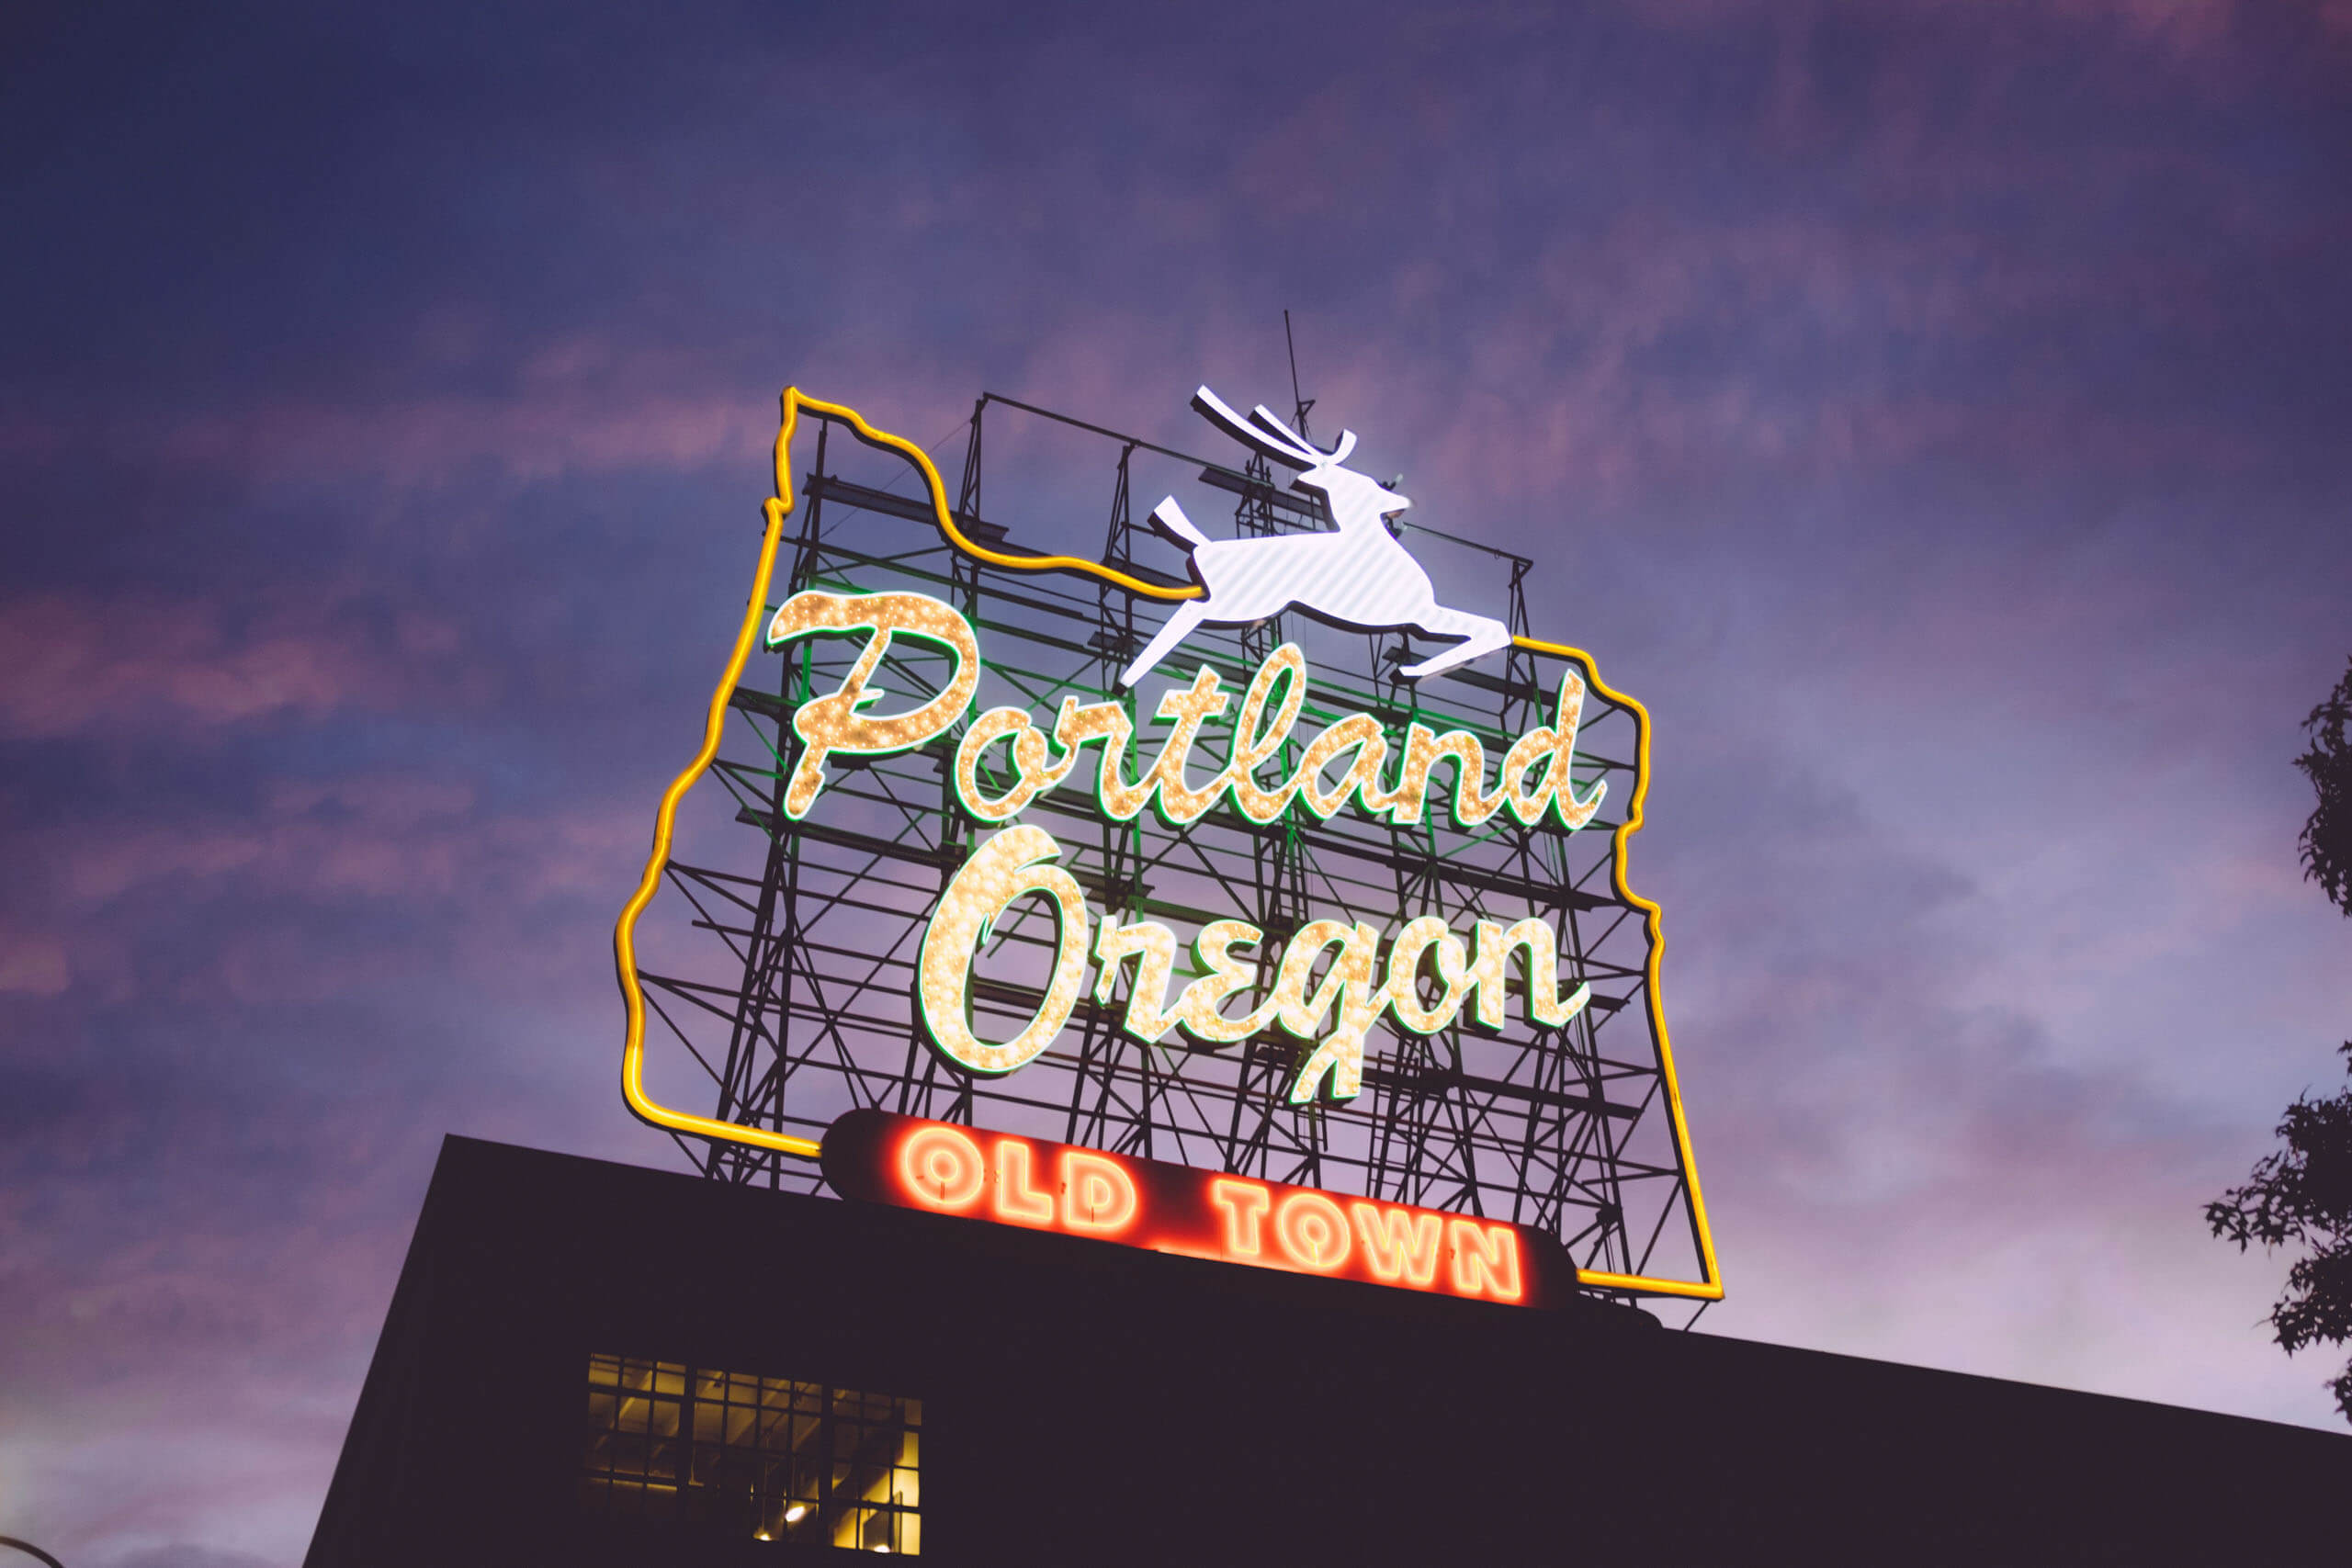 Portland Old Town sign. Photo by Zack Spear on Unsplash.